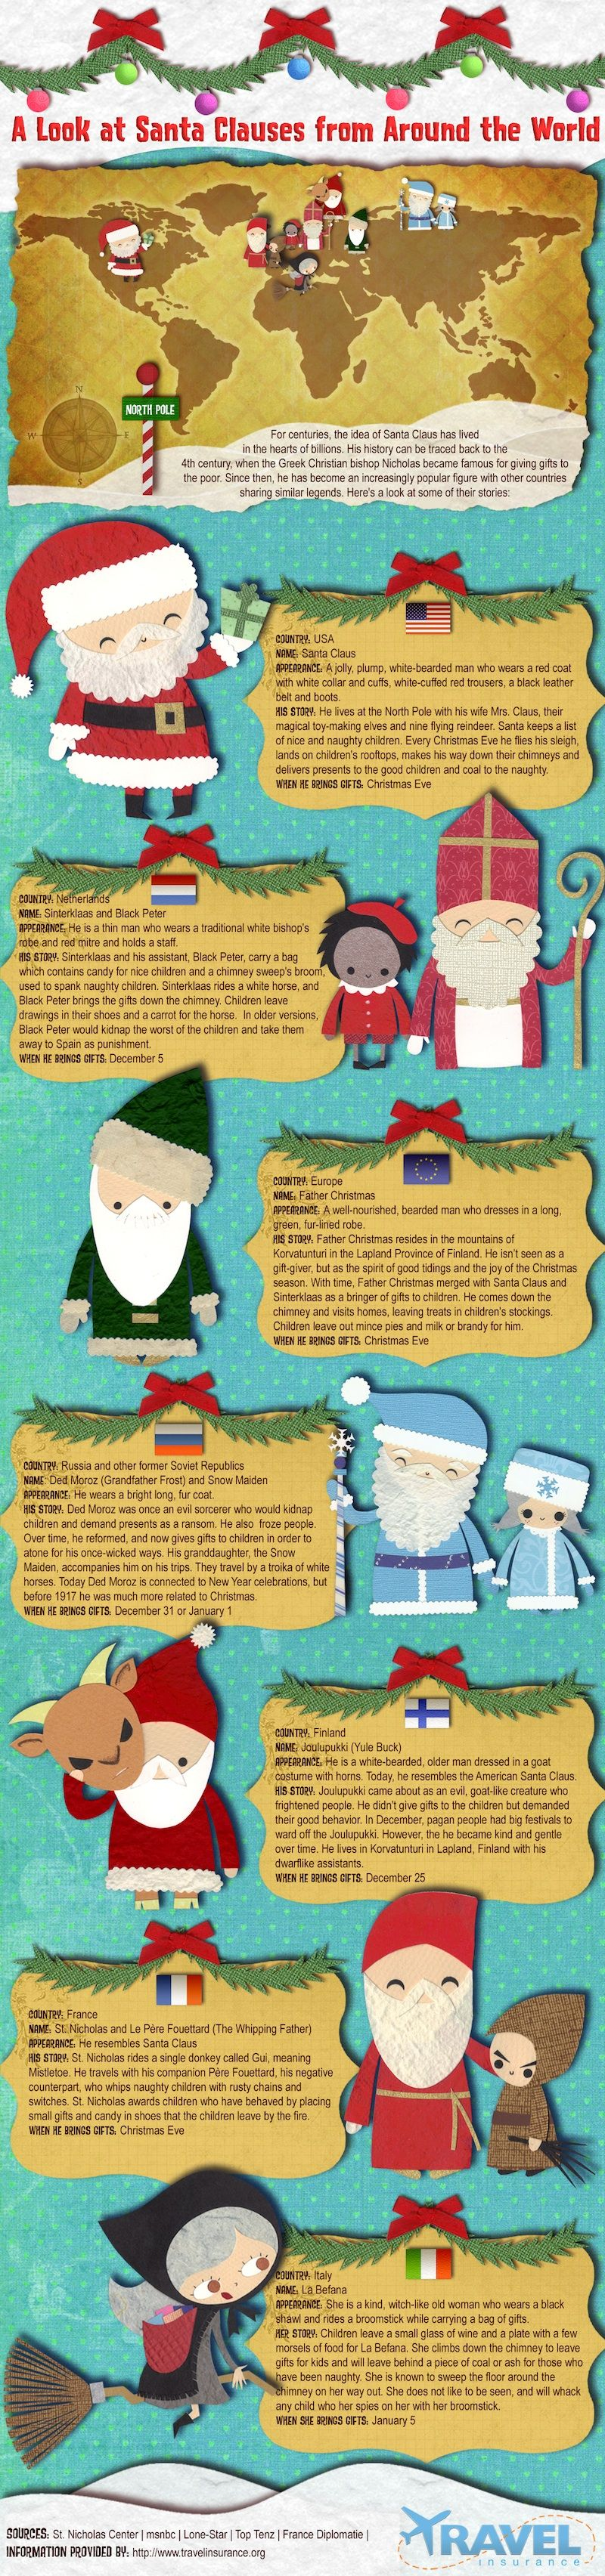 Uncategorized Christmas Stories From Around The World a look at santas from around the world travelinsurance org org